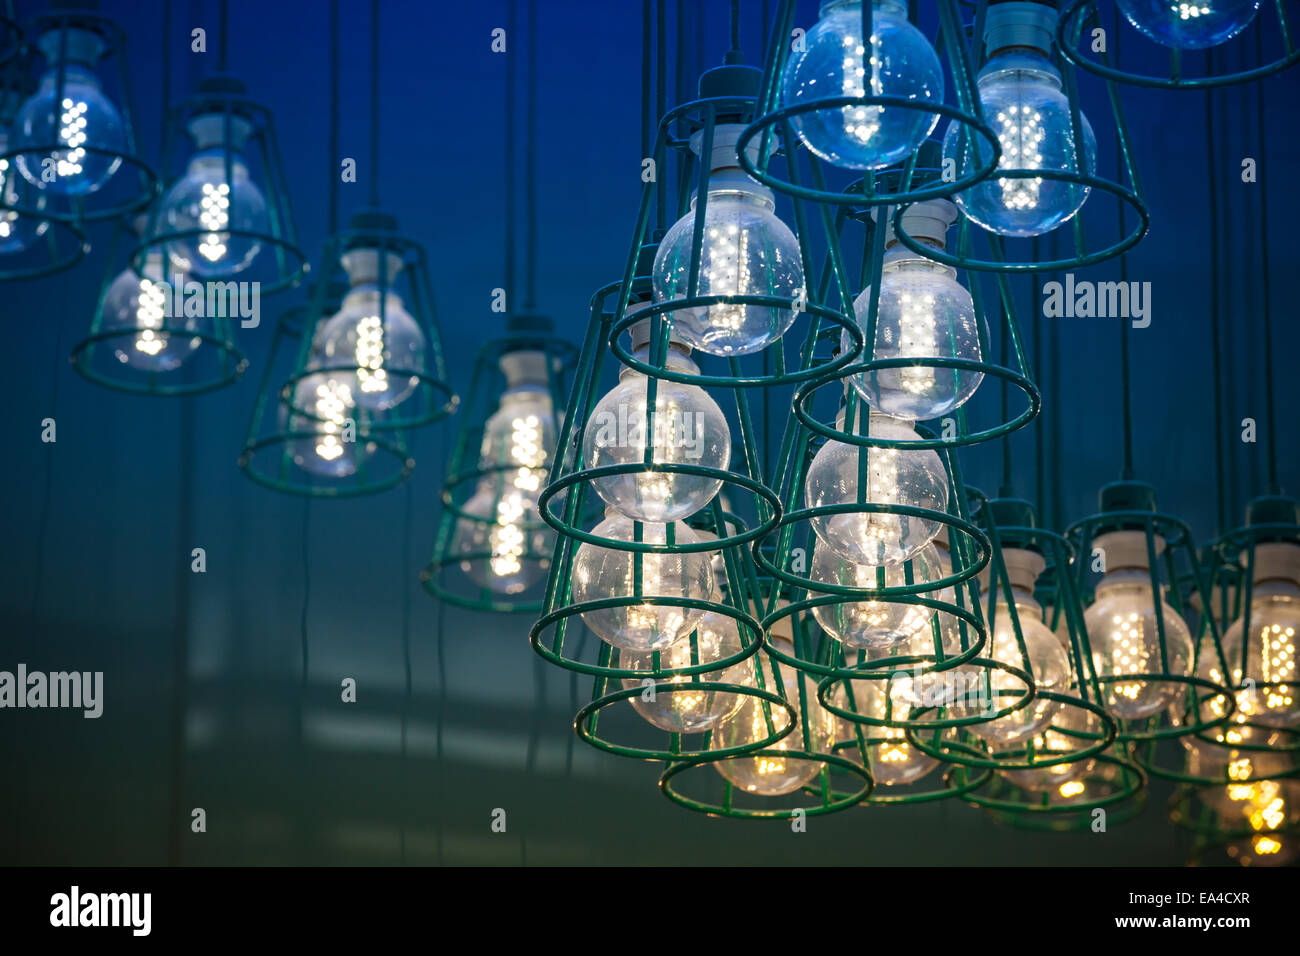 Abstract interior fragment. Stylized vintage colorful illumination with modern LED lamps in metal lampshades - Stock Image